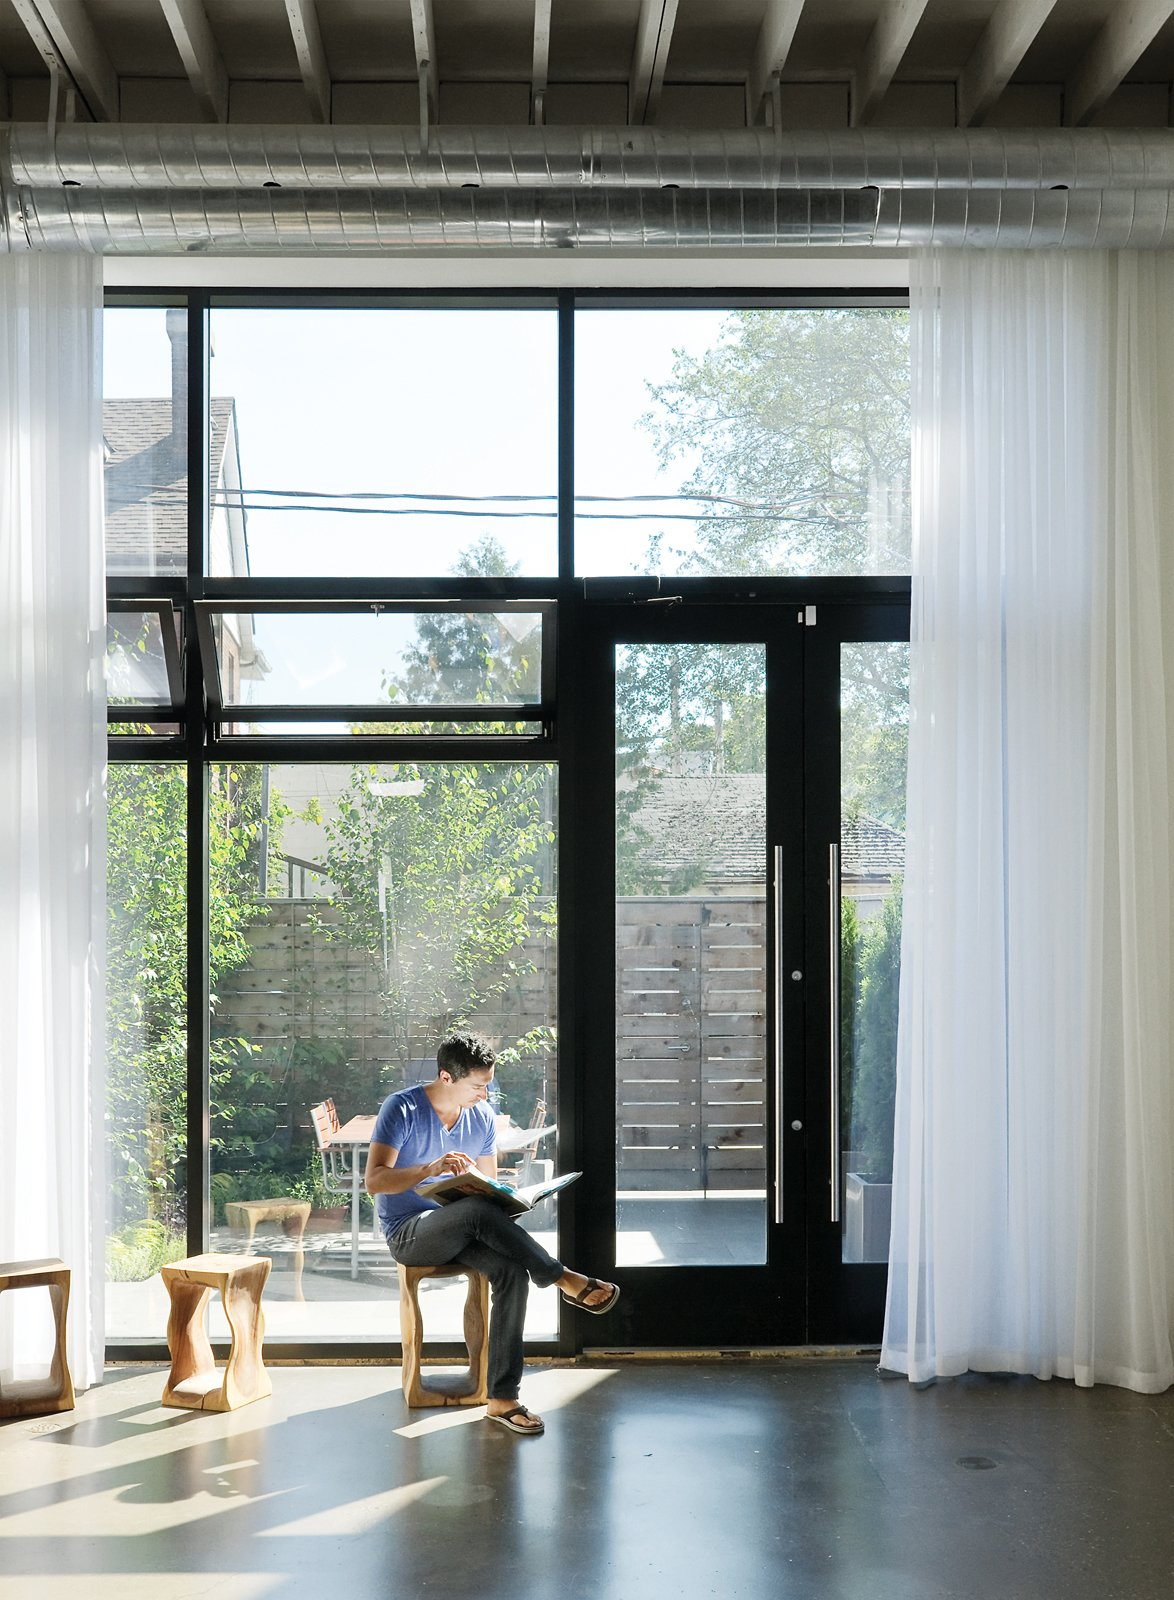 Windows and Metal In the house's front room Monkman relaxes on a stool from local retailer Andrew Richard Designs. A new window system draws in sunlight and views of the front courtyard designed by local landscape architect Terry McGlade, the building's former owner.  Shining Examples of Clerestory Windows by Luke Hopping from An Art Studio That Would Make Picasso Jealous